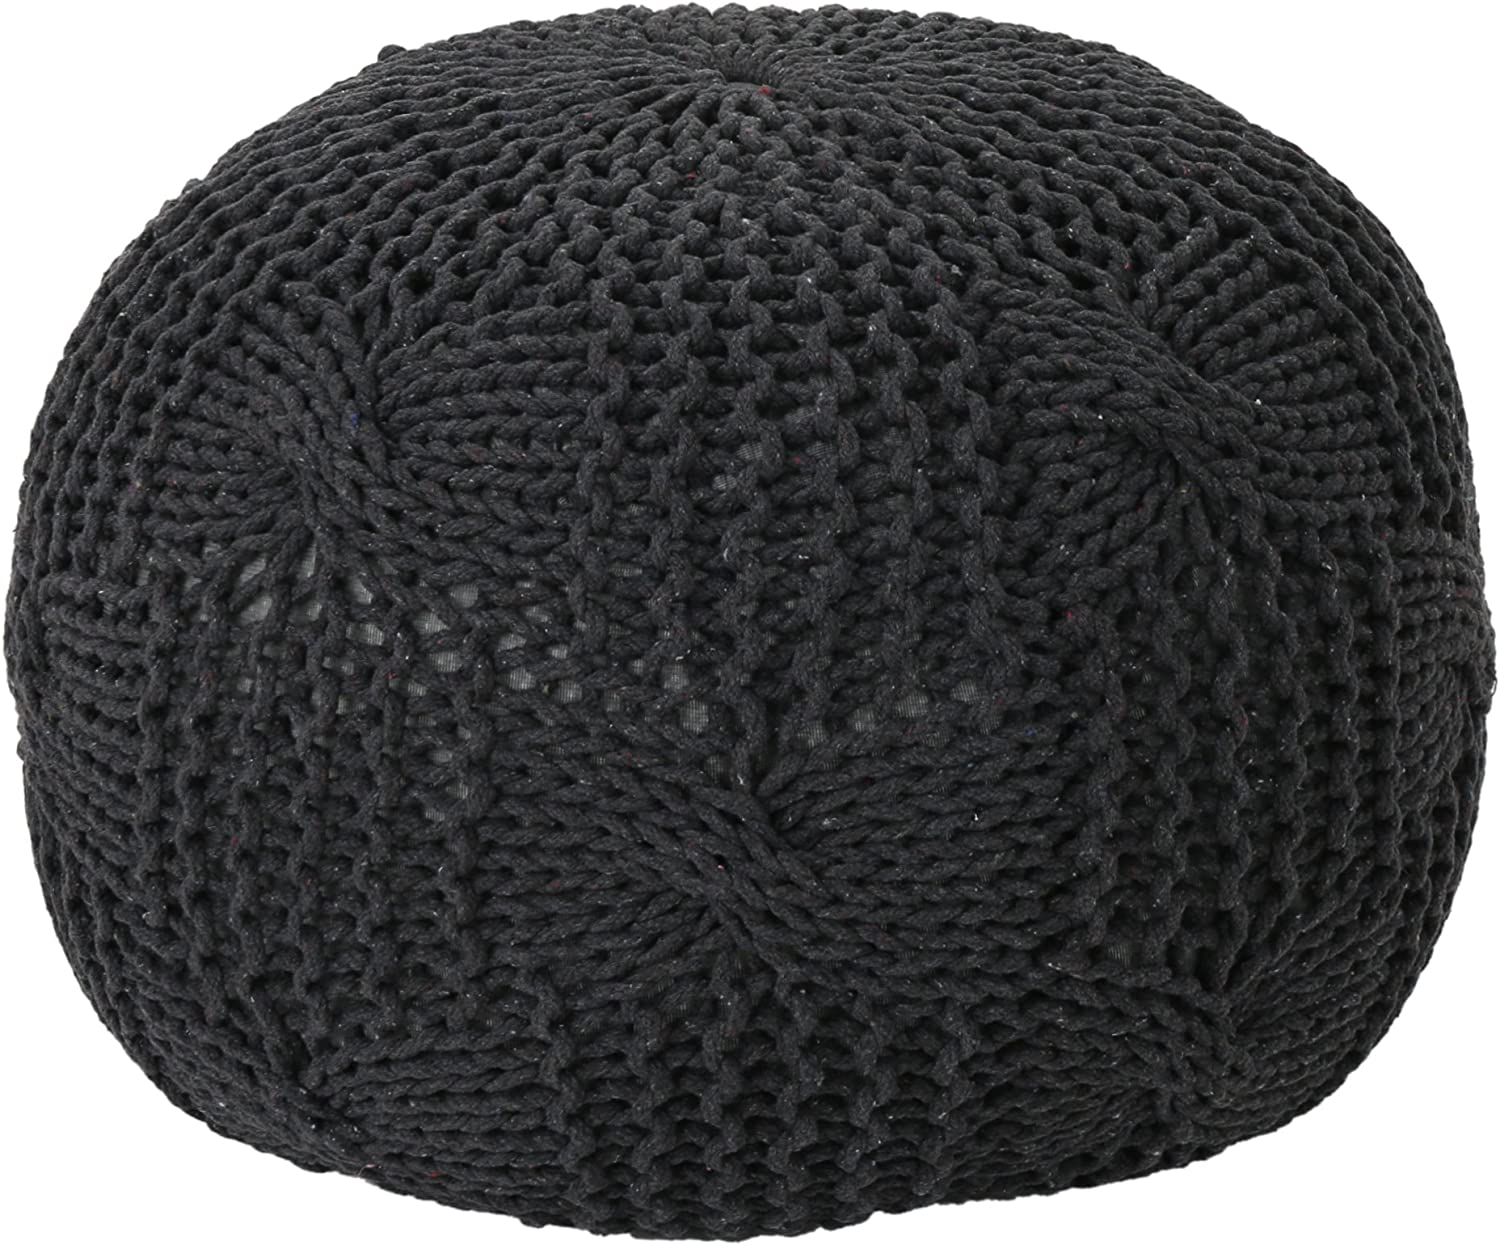 Christopher Knight Home Ansel Dallas Mall online shopping Knitted Grey Pouf Cotton Dark